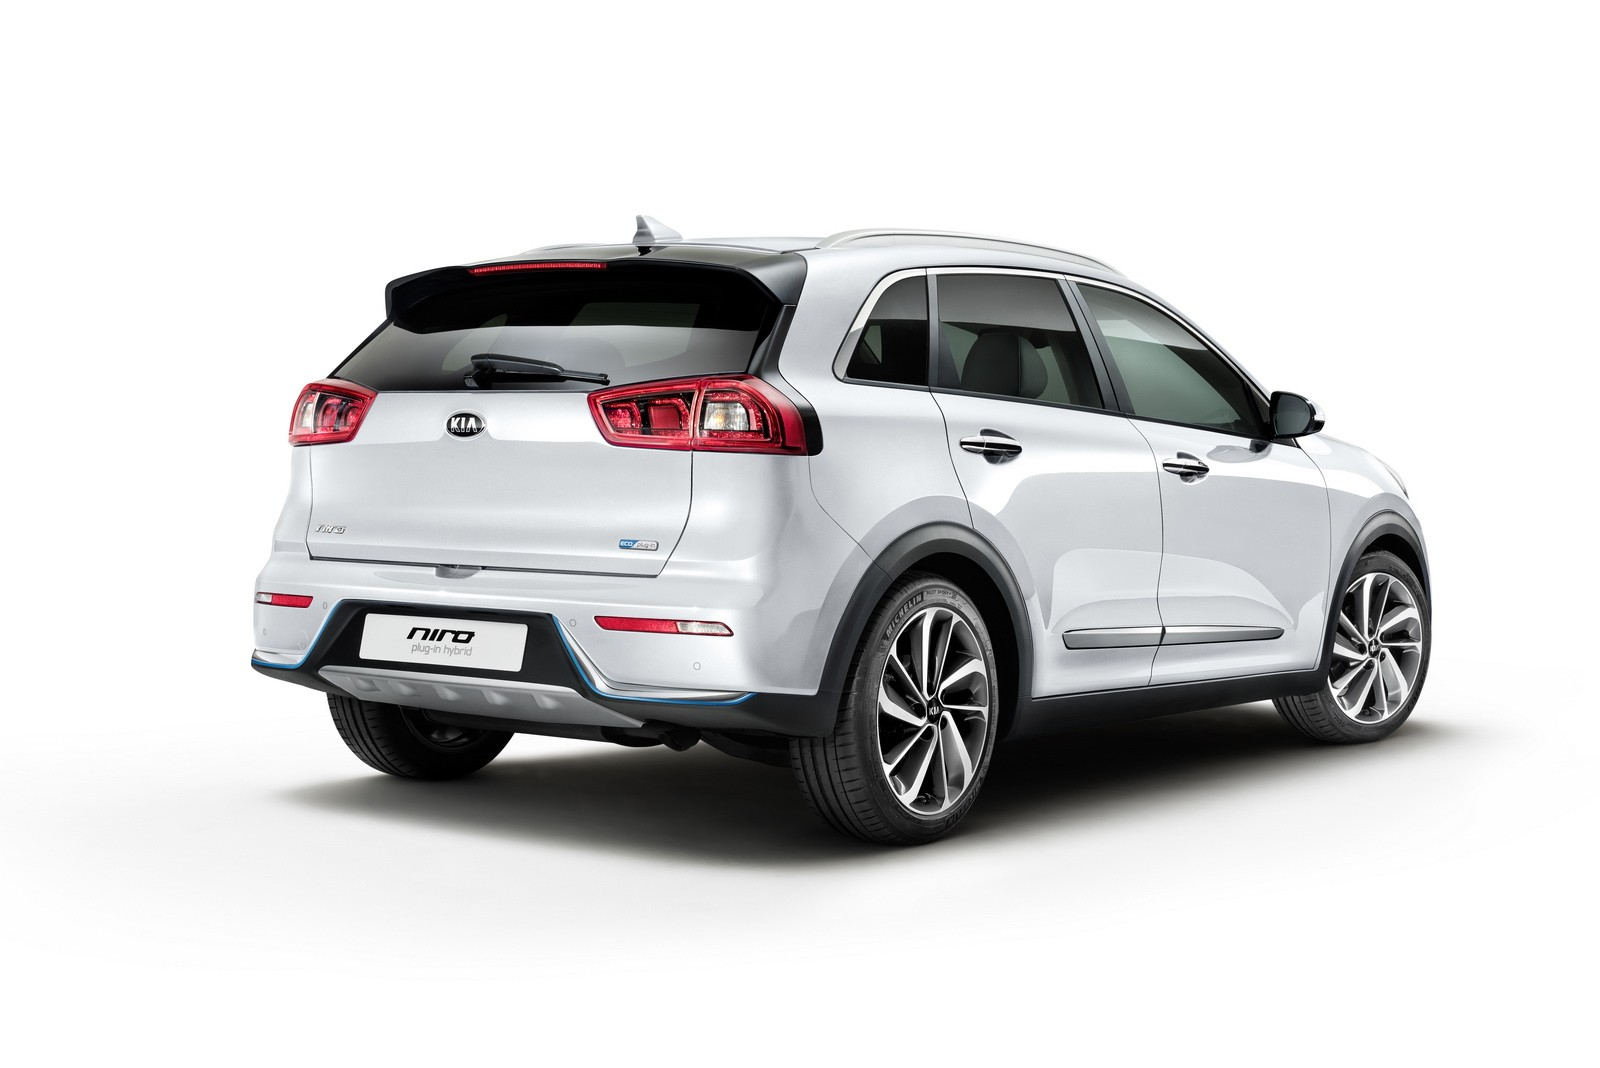 2018 kia niro plug in hybrid goes official packs 8 9 kwh battery autoevolution. Black Bedroom Furniture Sets. Home Design Ideas